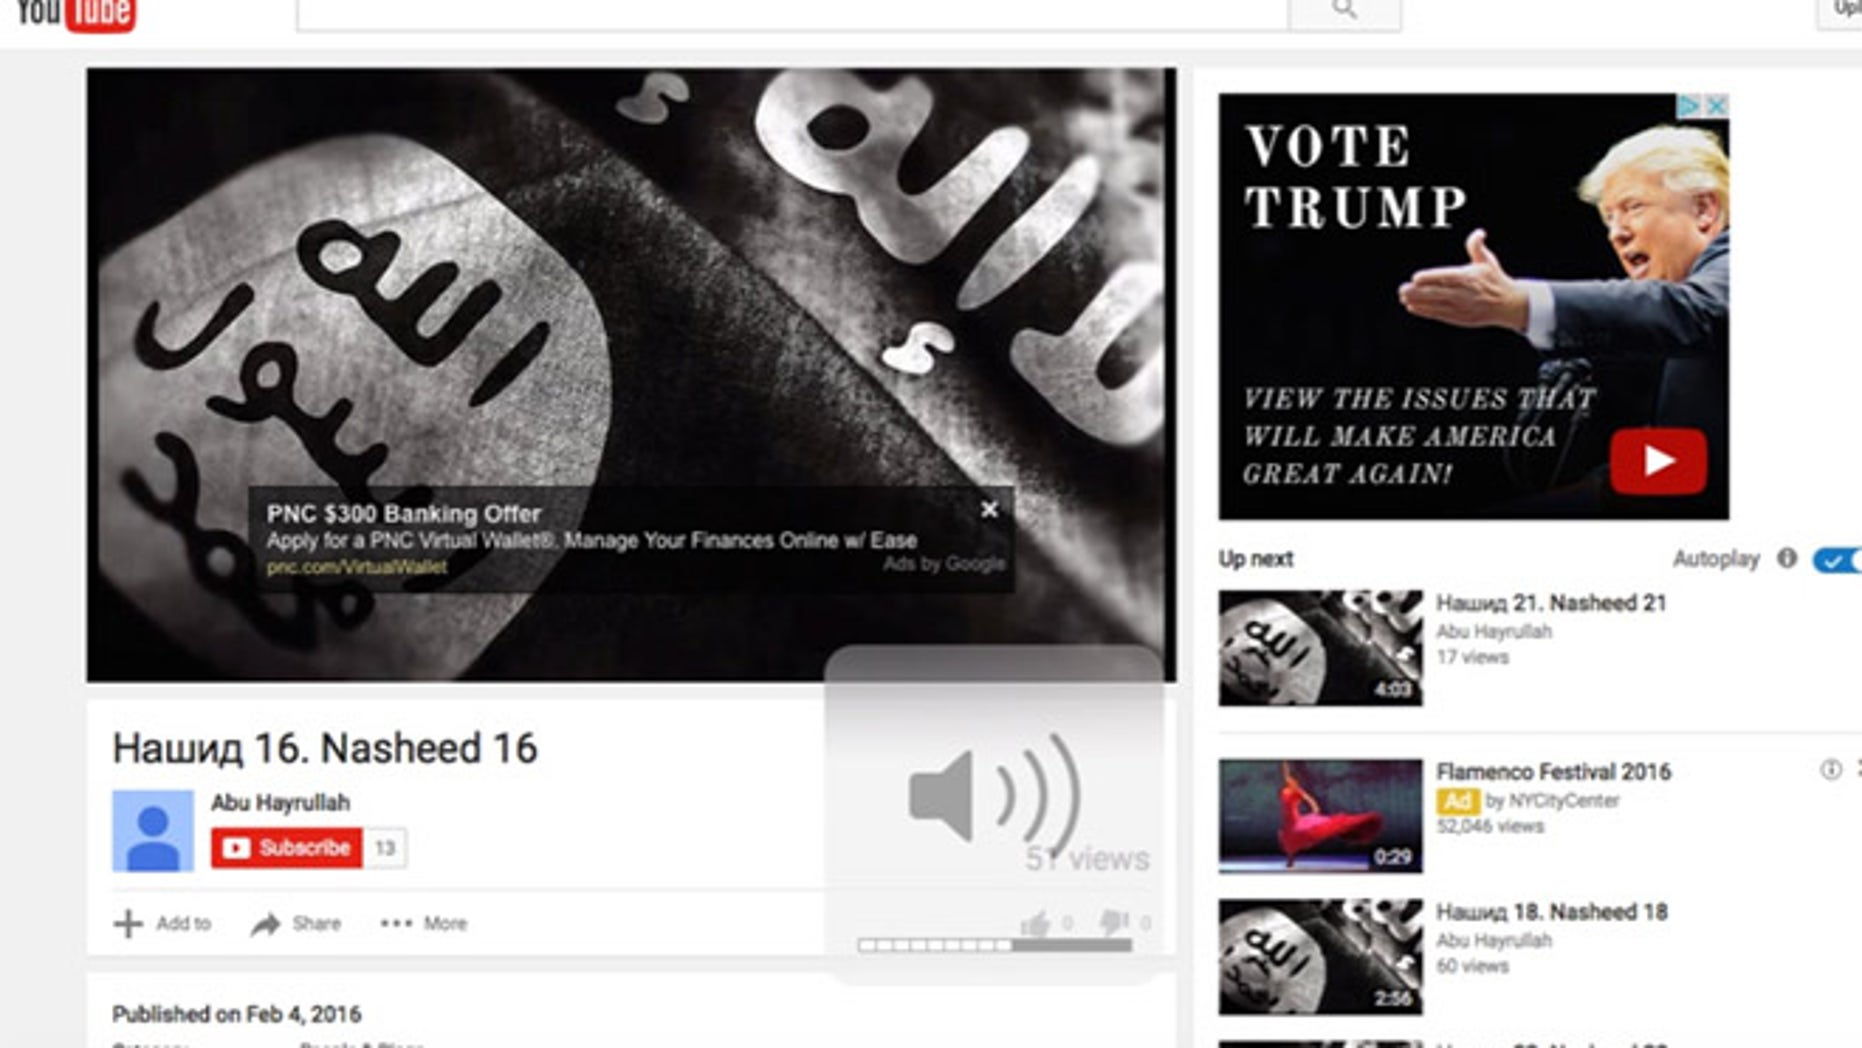 This political ad for Donald Trump appeared for months on an ISIS-linked YouTube page, according to one software expert. (Screengrab)